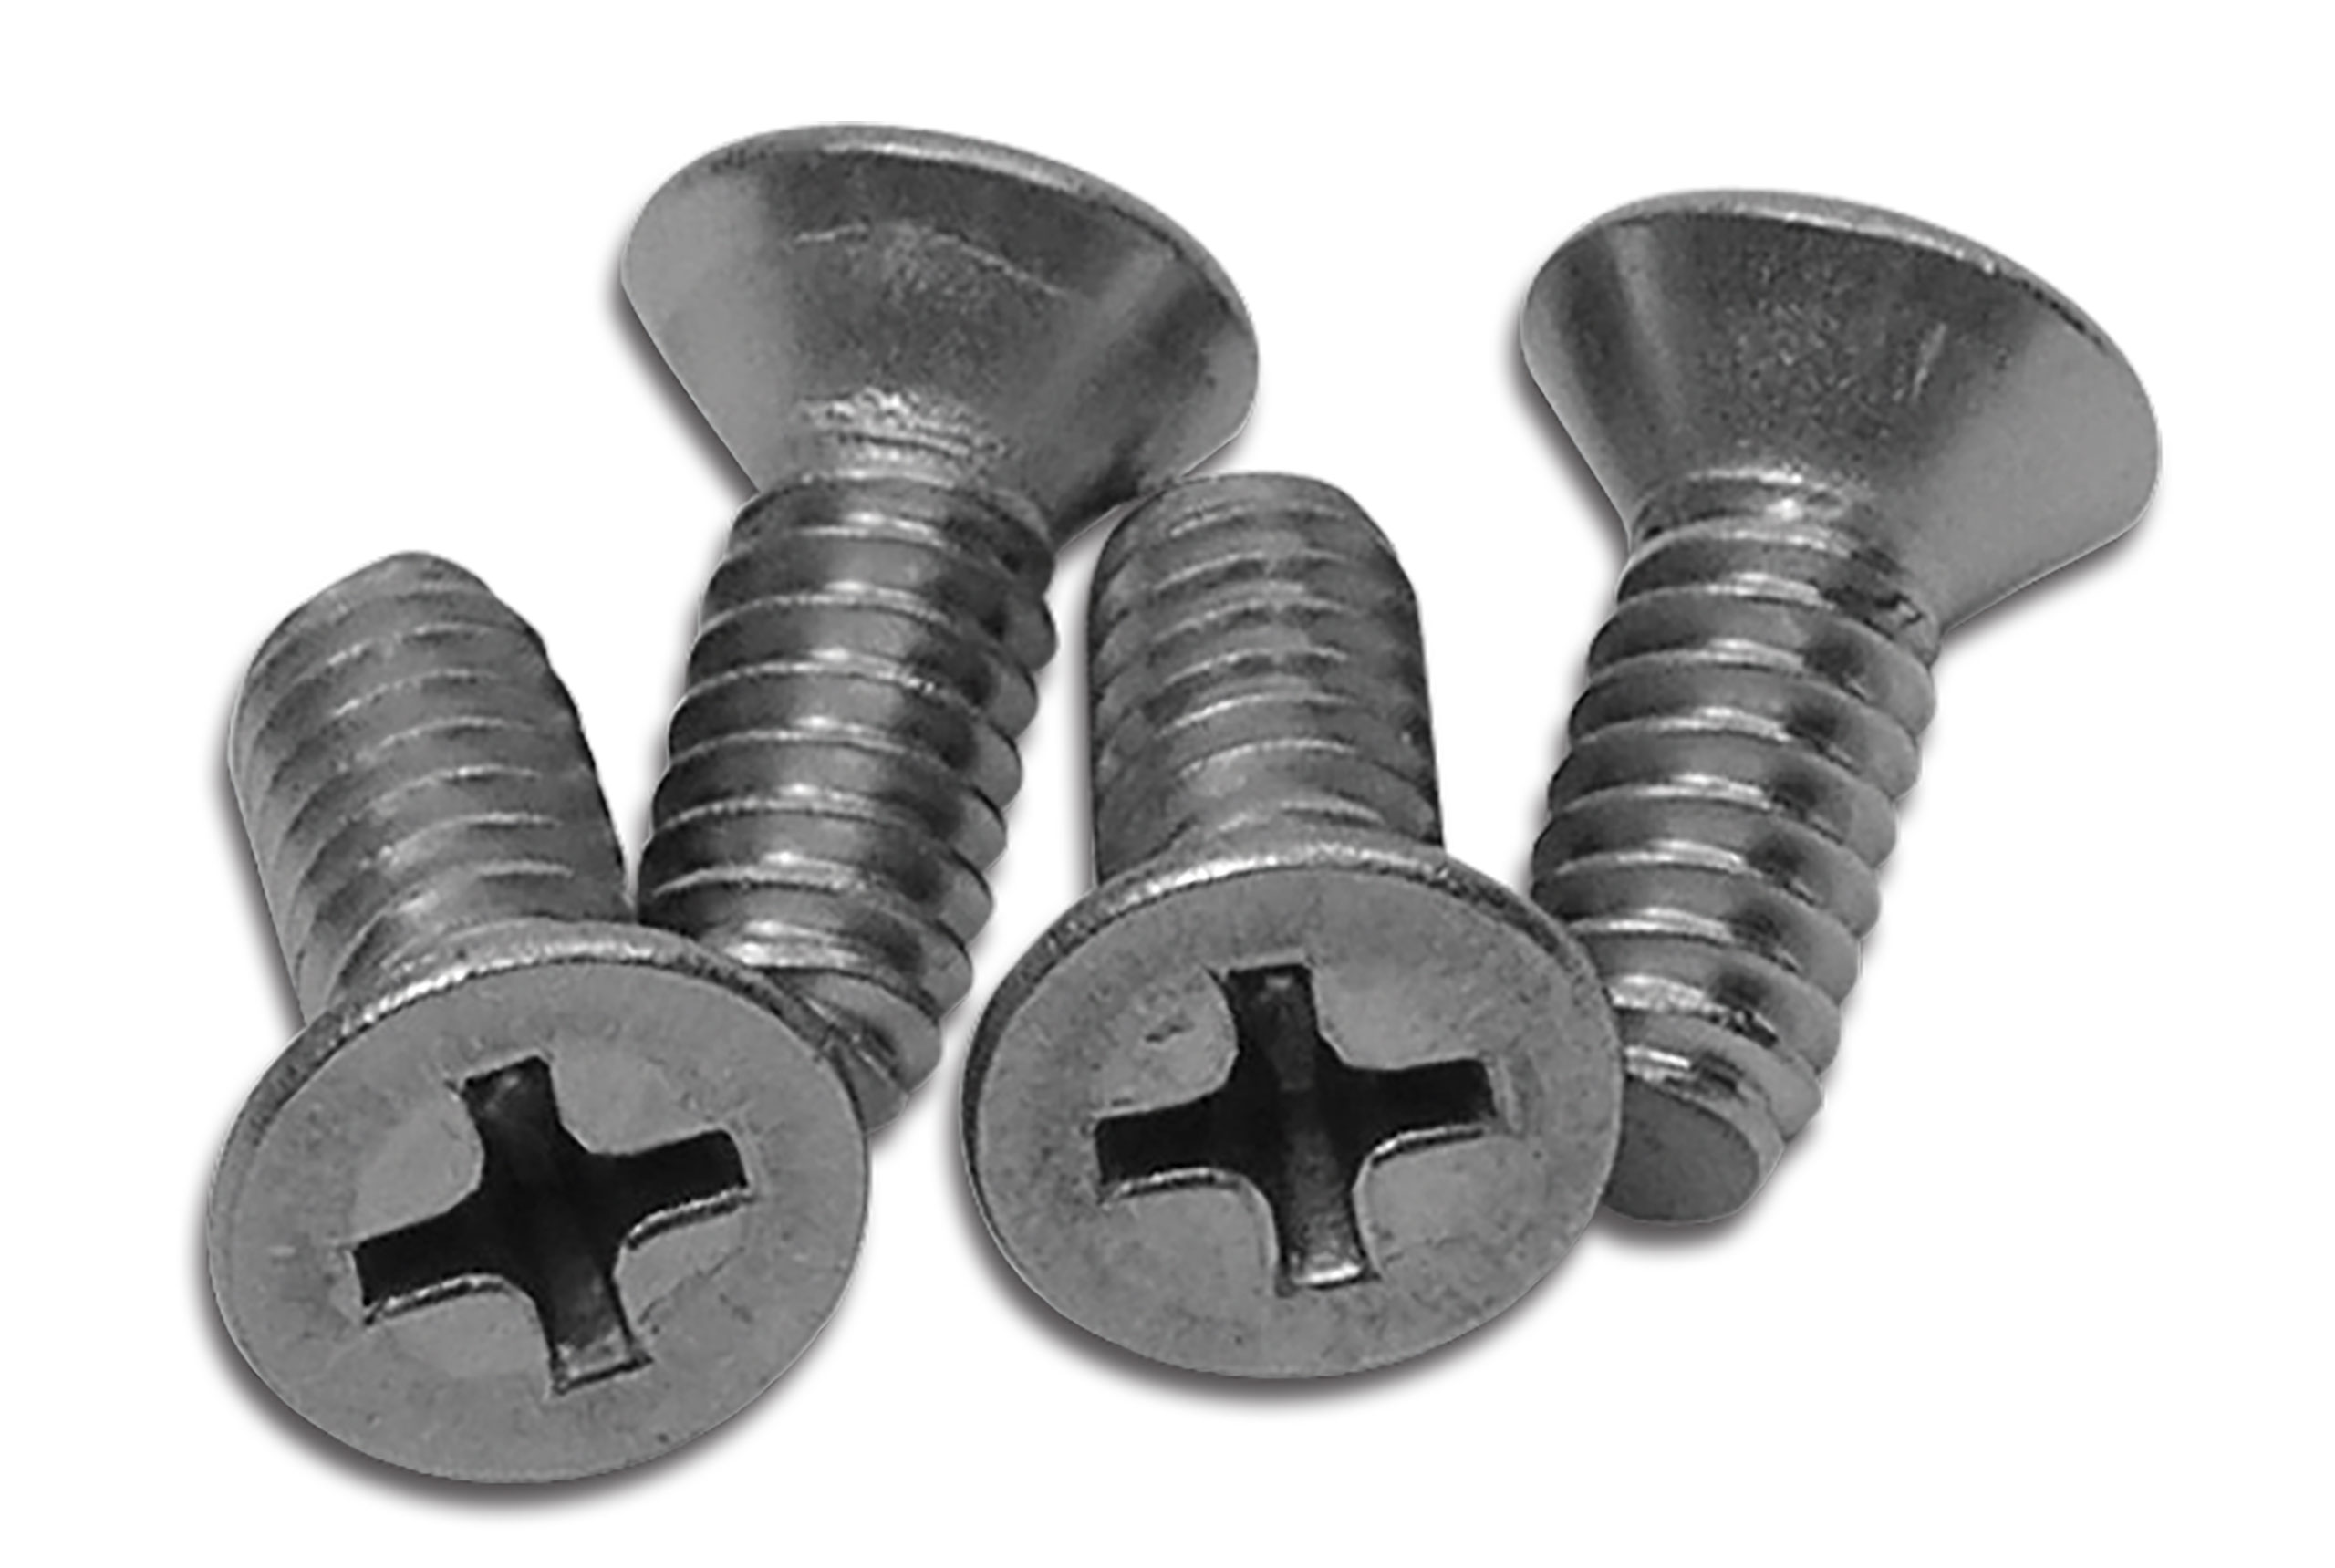 Corvette America 1968-1979 Chevrolet Corvette T-Top Rear Mount Plate Screws. 4 Piece